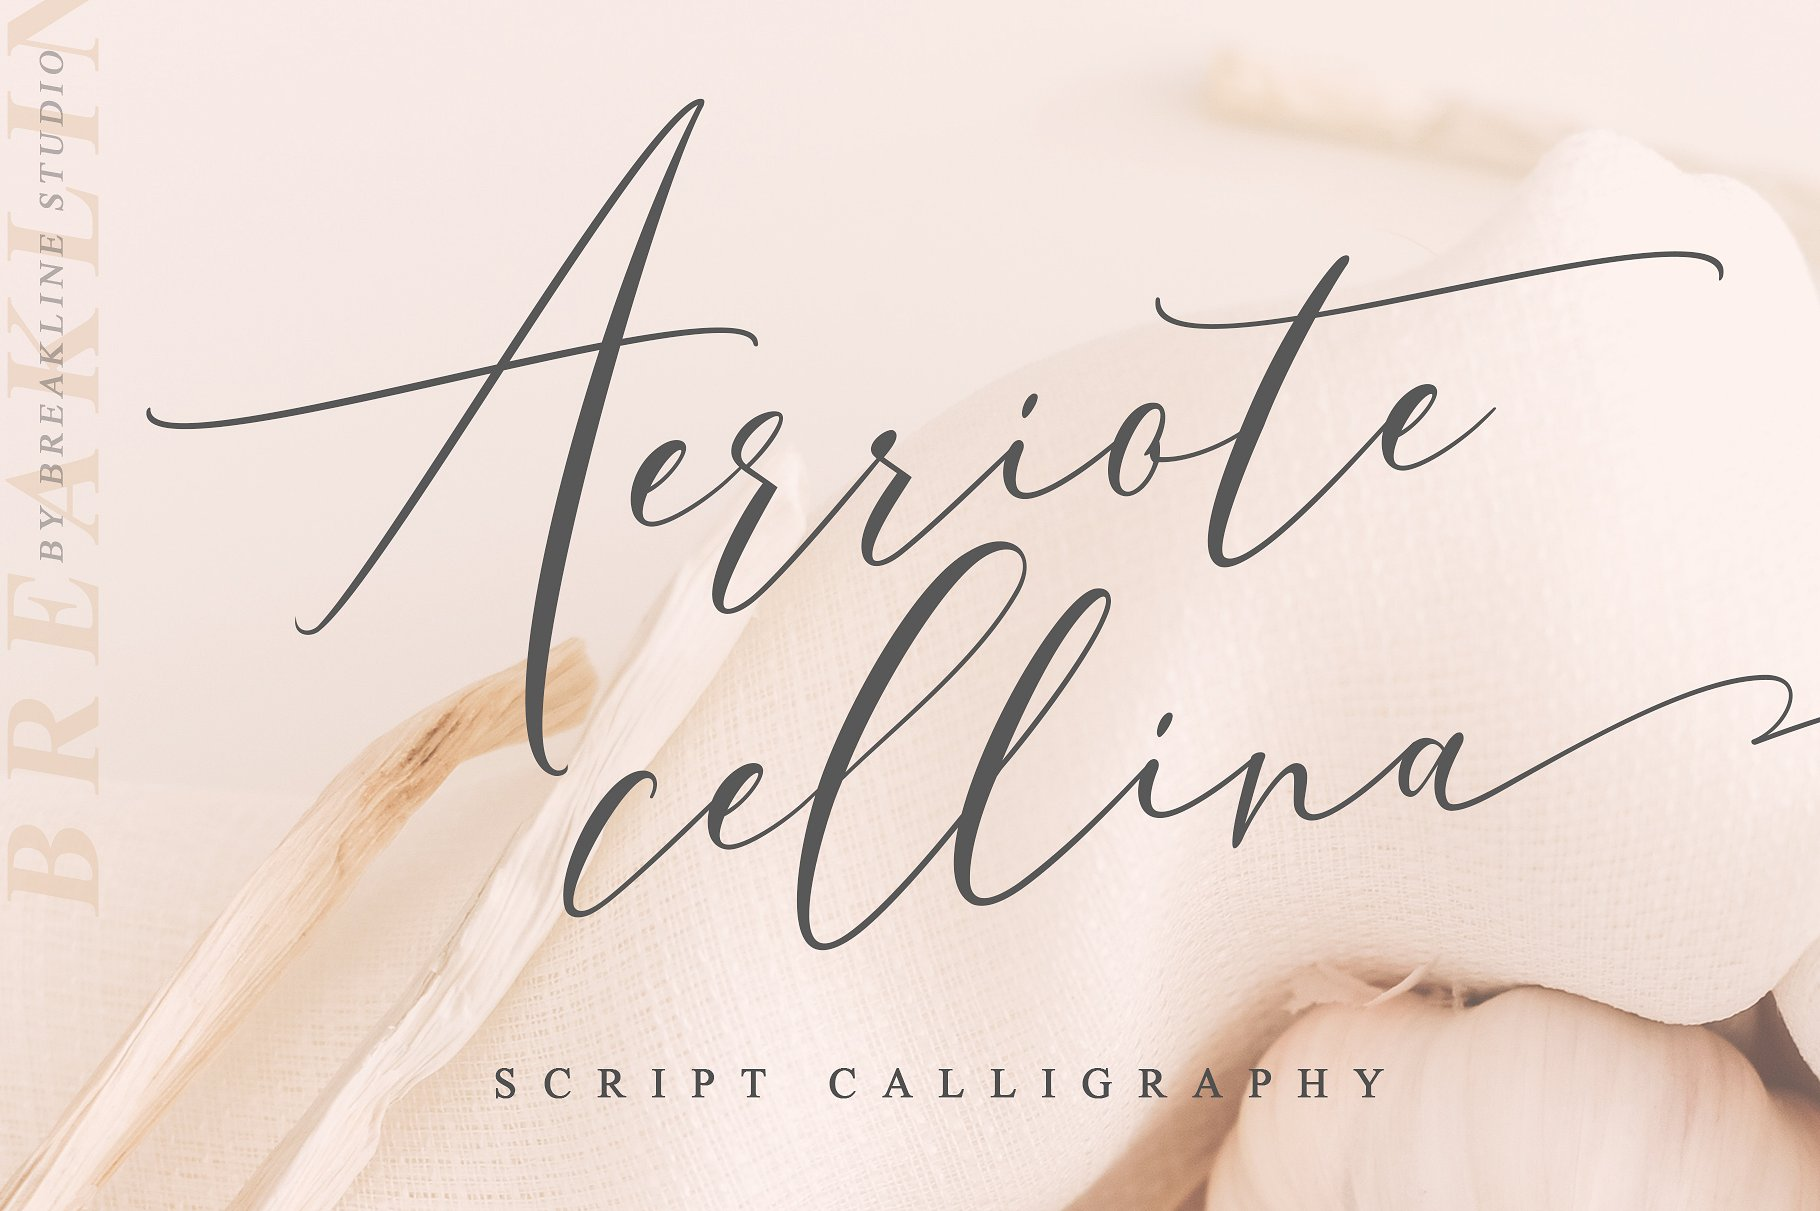 "Aerriote Cellina Introducing Aerriote Cellina, A new fresh & modern classic script with a handmade calligraphy style. The impression is classic, yet modern, making ""Aerriote Cellina"" still catchy for all your creativity. A charming typeface and So beautiful on the invitation like greeting cards, branding materials, business cards, quotes, posters, and more! Buy Now $15"